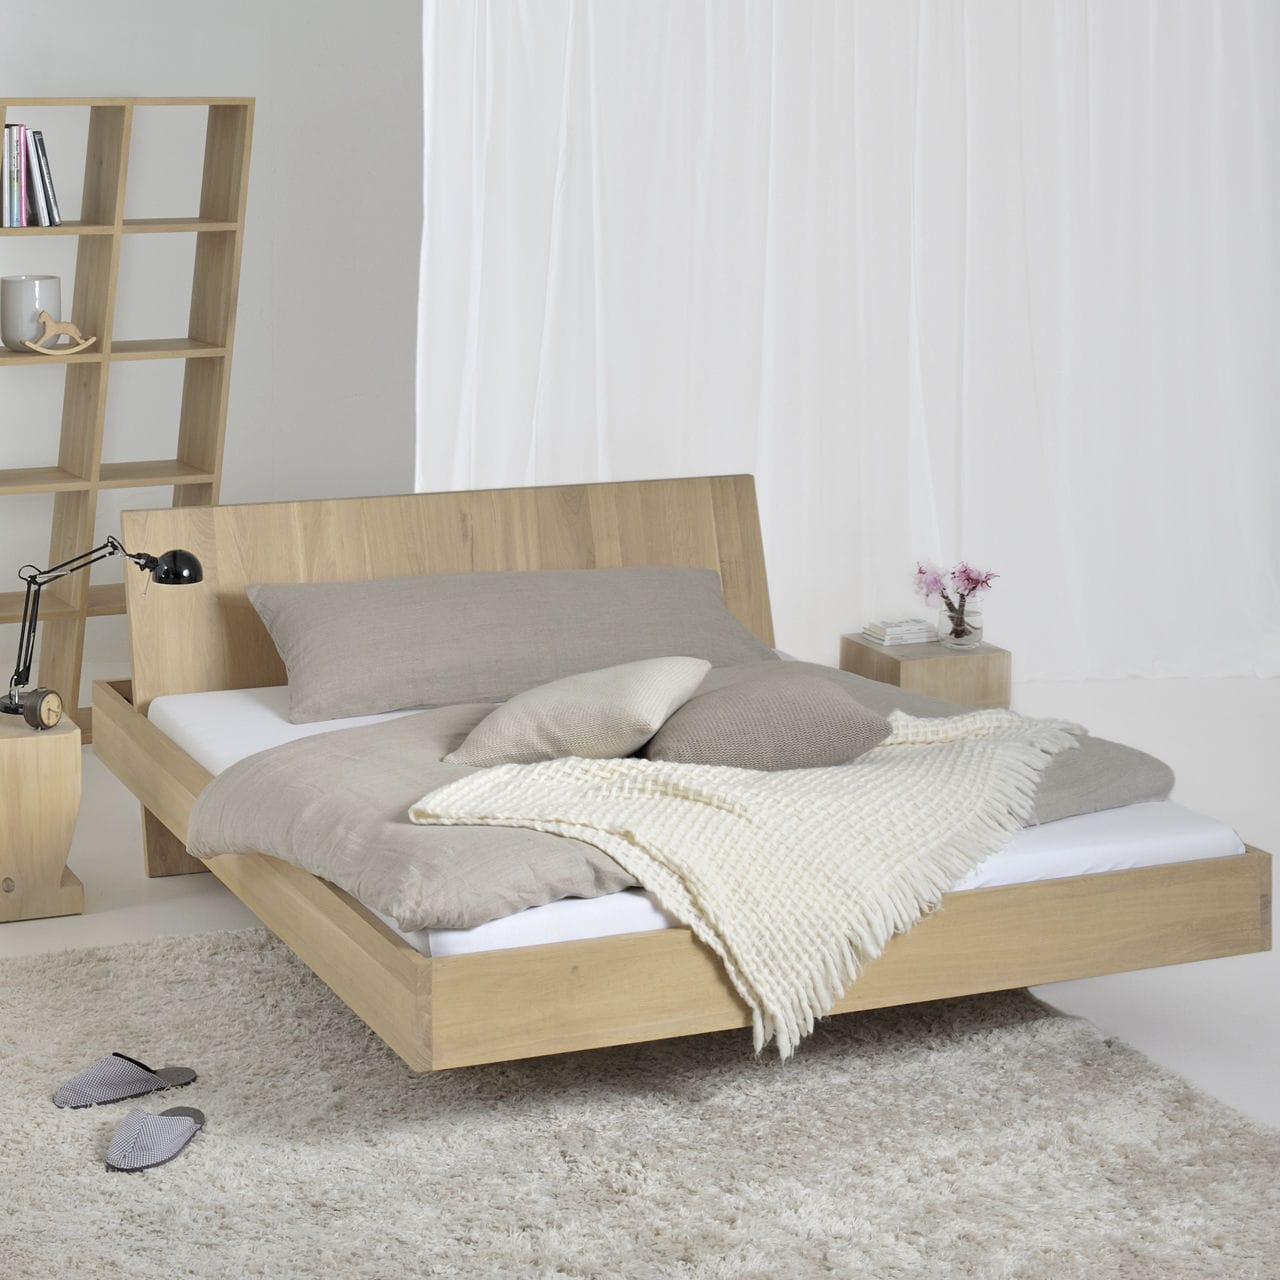 Floating Bed Somnia Vitamin Design Double Contemporary With Headboard